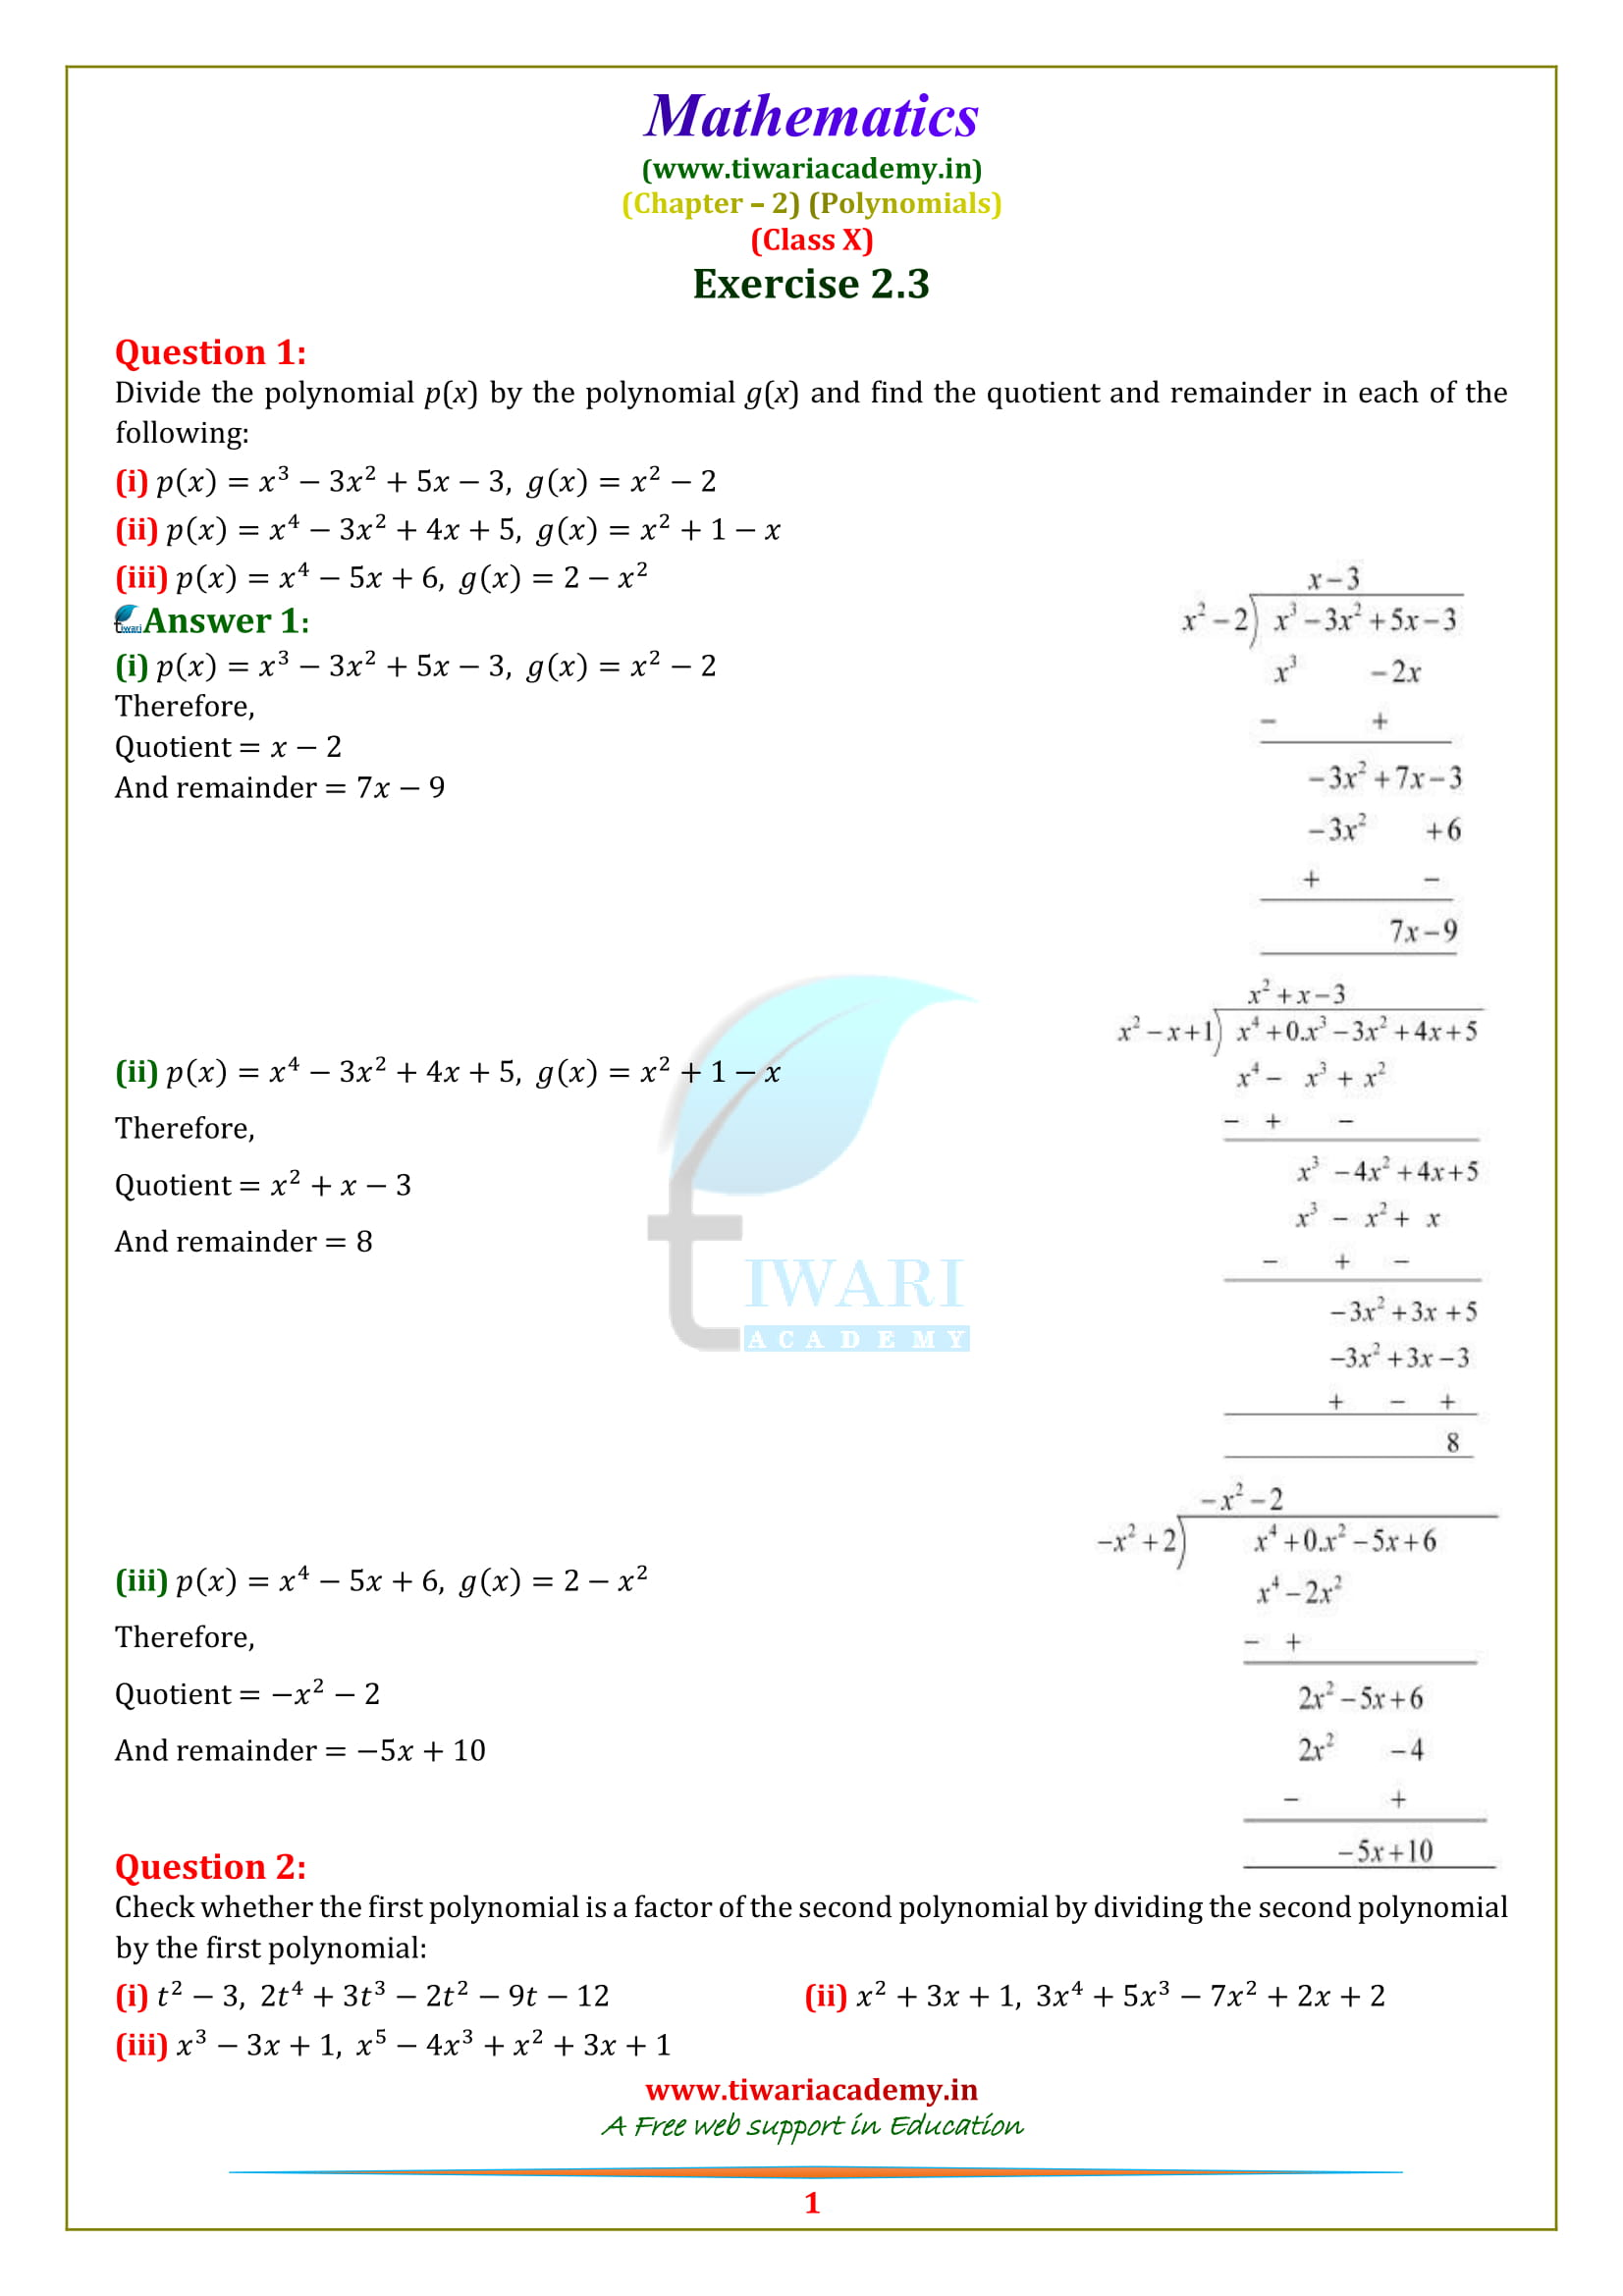 Class 10 Maths Chapter 2 Exercise 2.3 Question 1, 2, 3